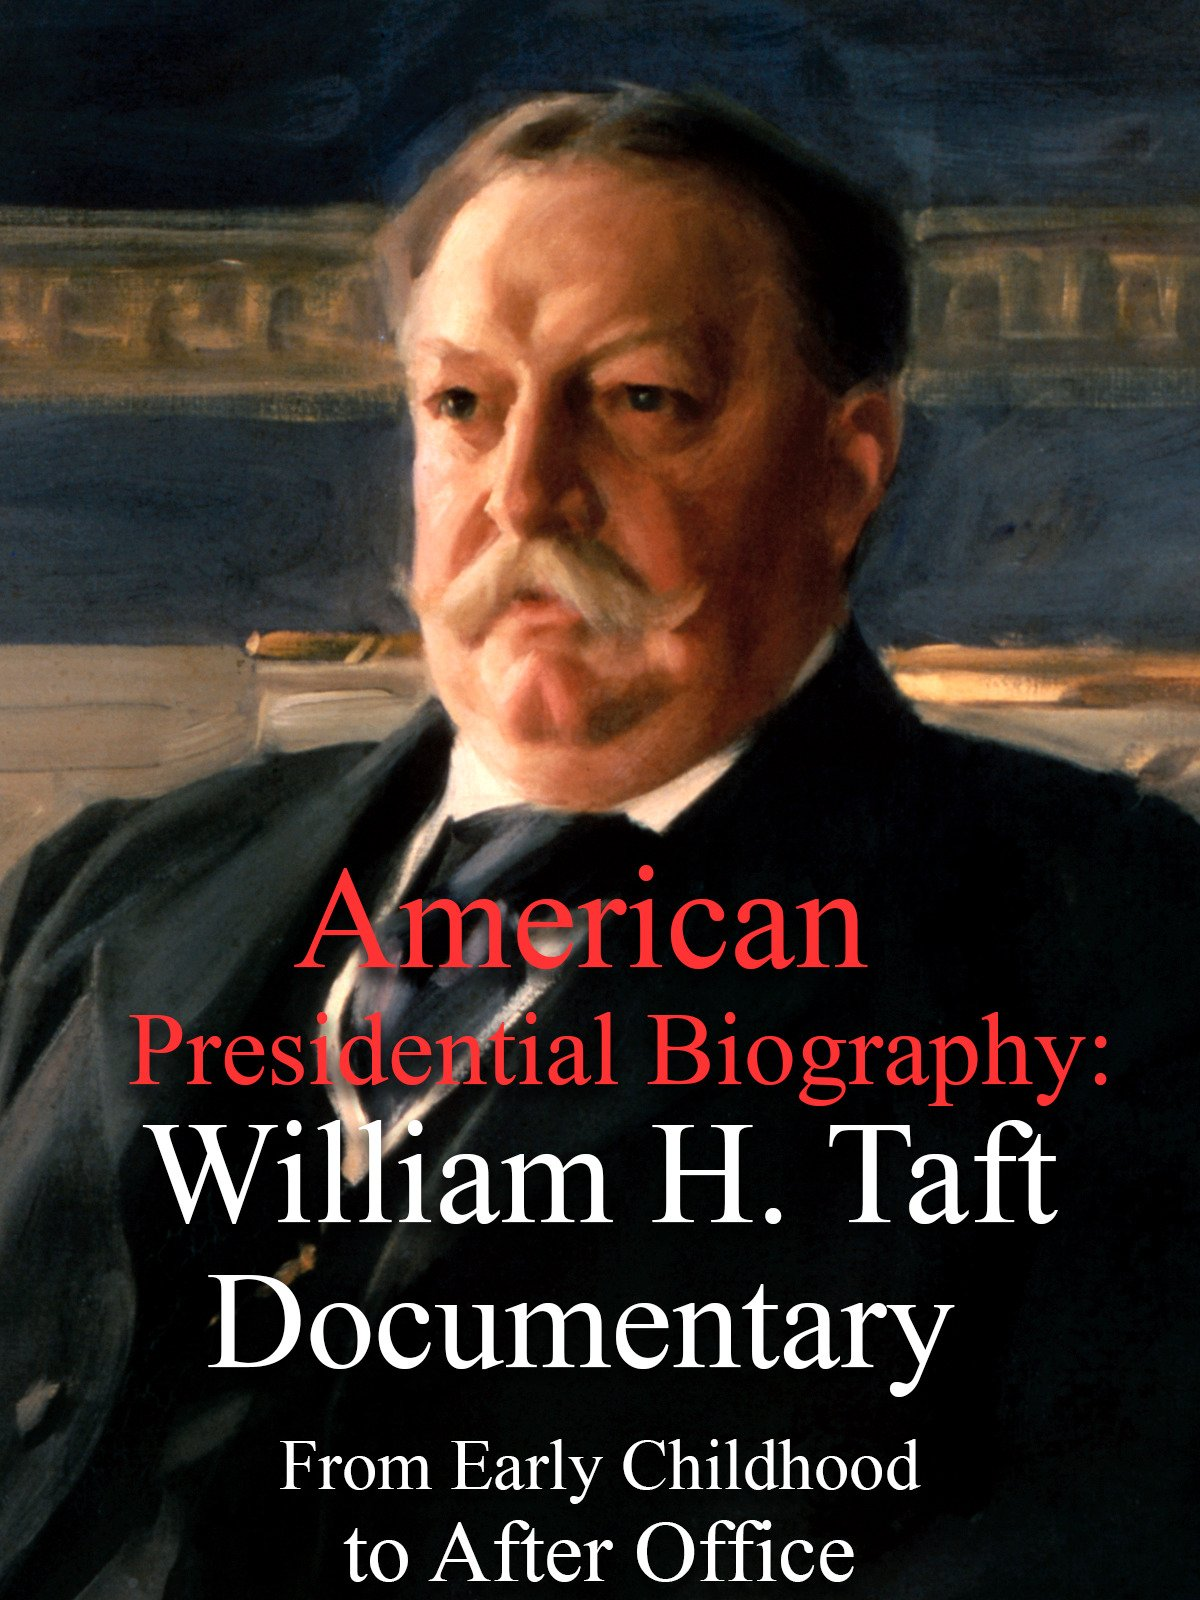 American Presidential Biography: William H. Taft Documentary From Early Childhood to After Office